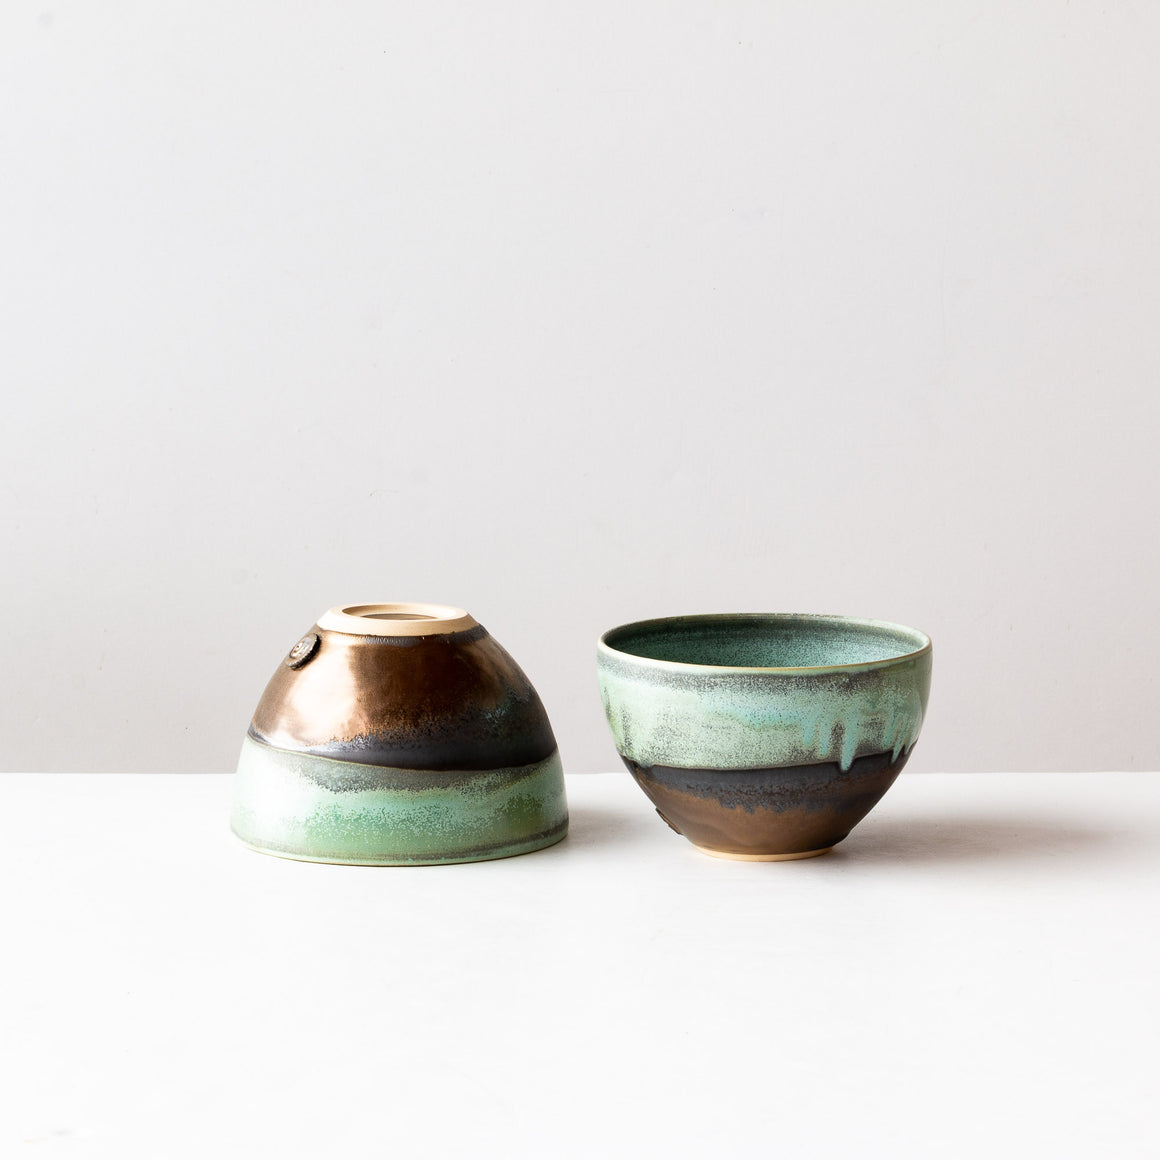 Three Handmade Turquoise Bowls in Sandstone - Sold by Chic & Basta